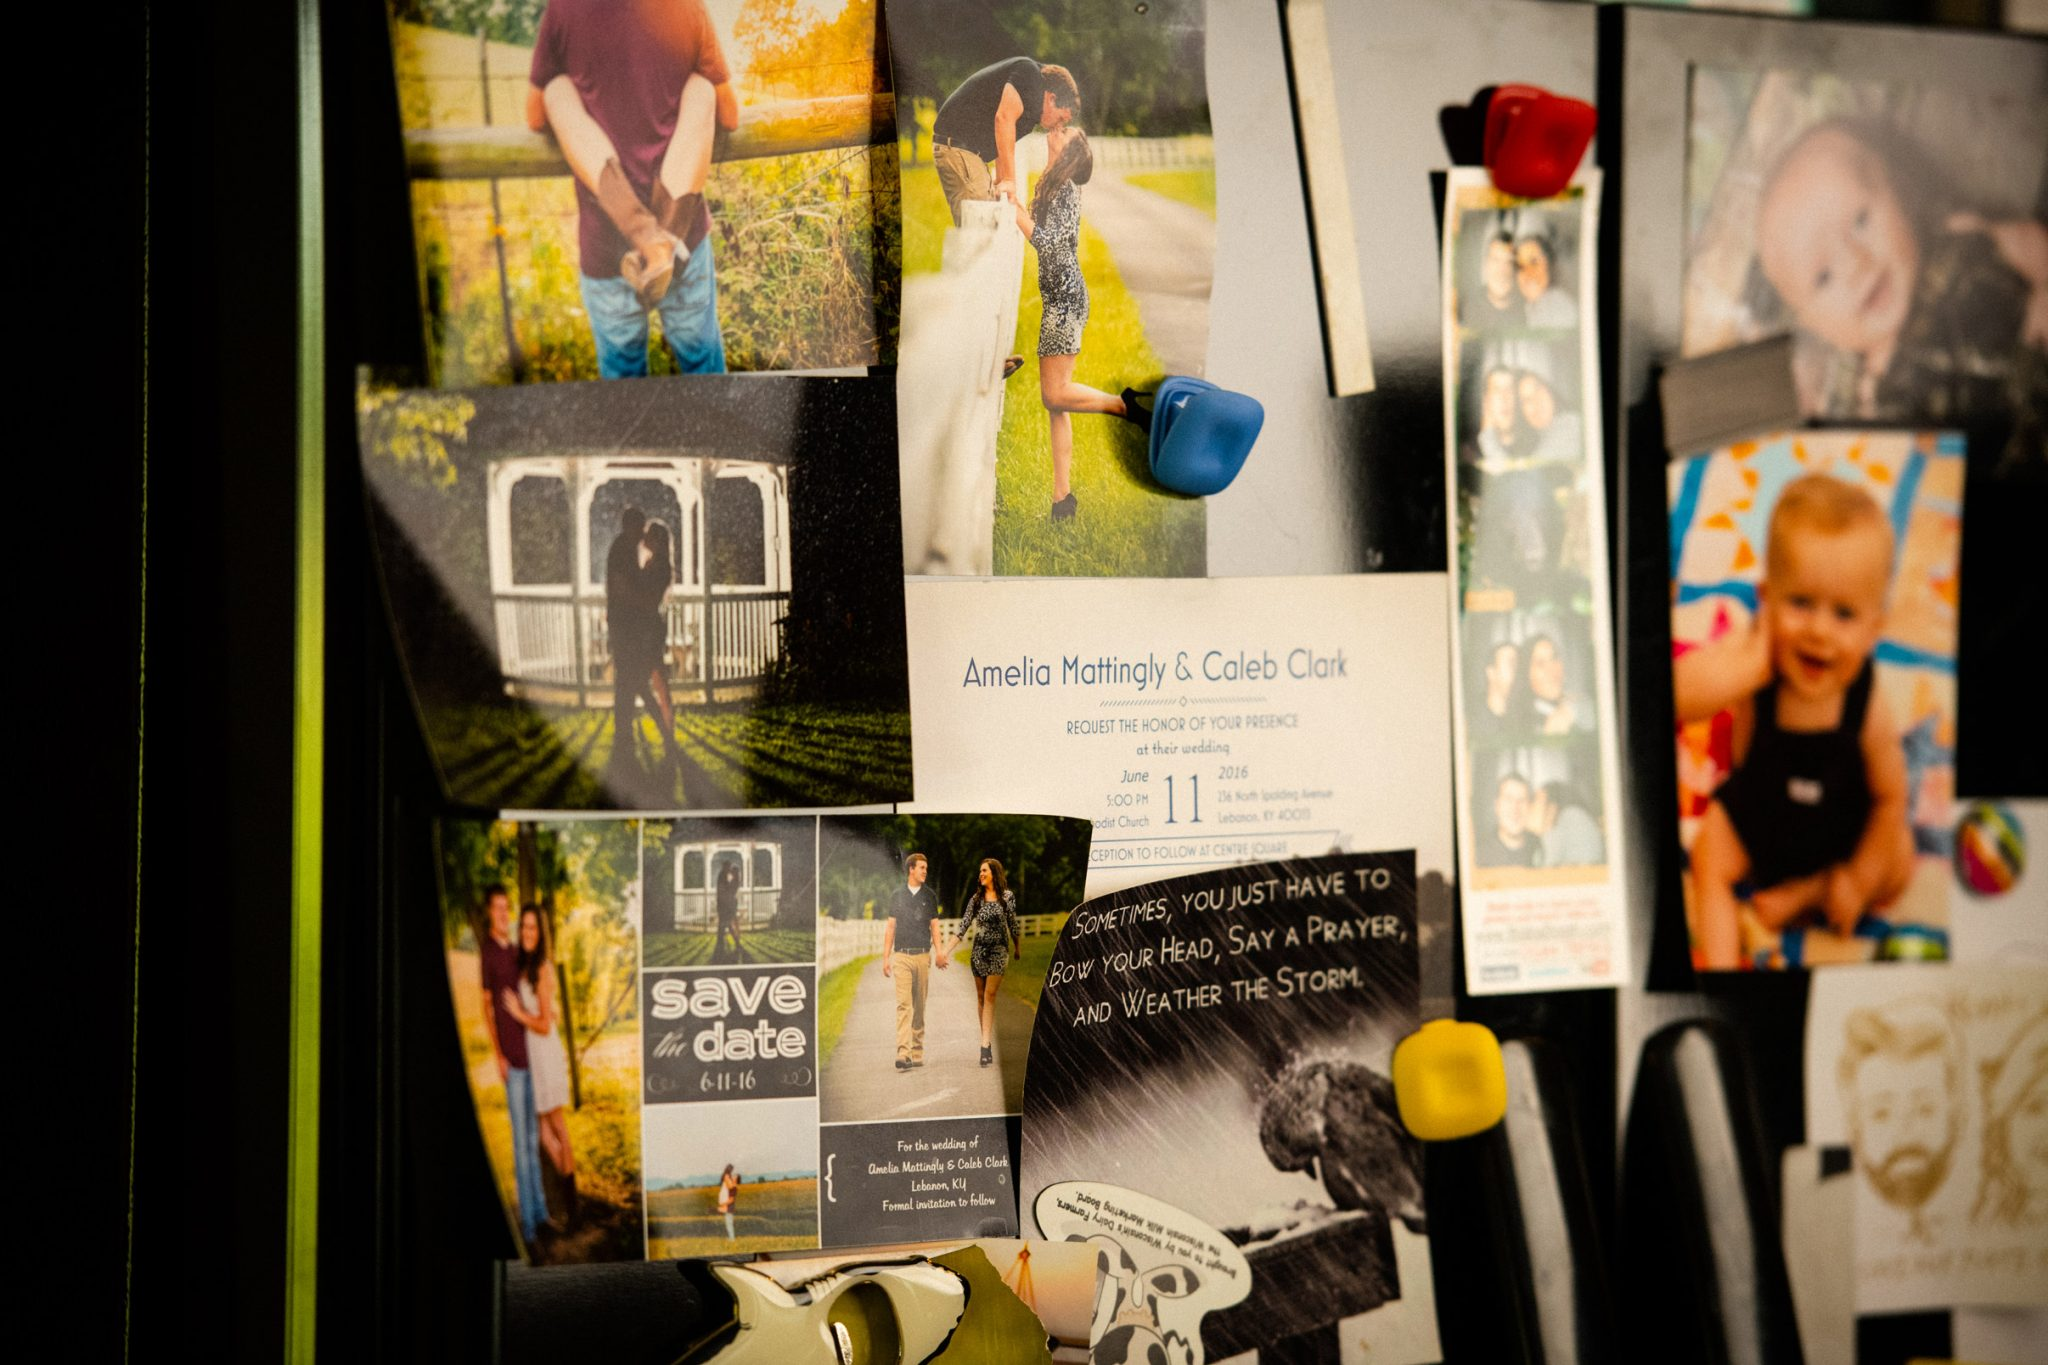 Close up of a refrigerator door covered in wedding photos and baby photos of Cason.